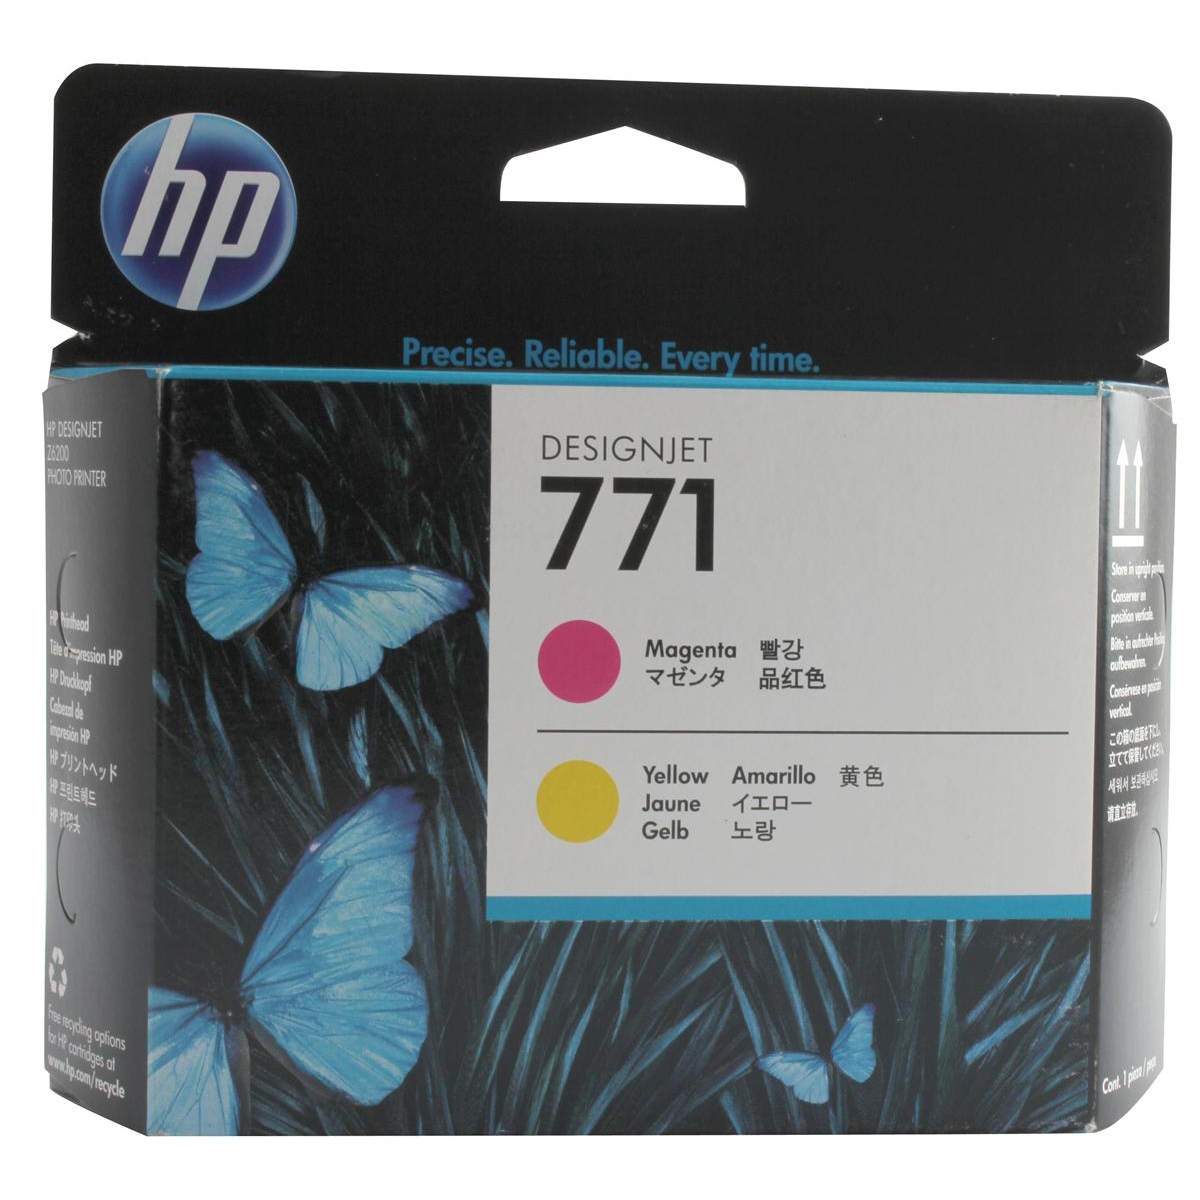 Hewlett Packard [HP] No.771 Printhead Magenta and Yellow Ref CE018A *3to5 Day Leadtime*